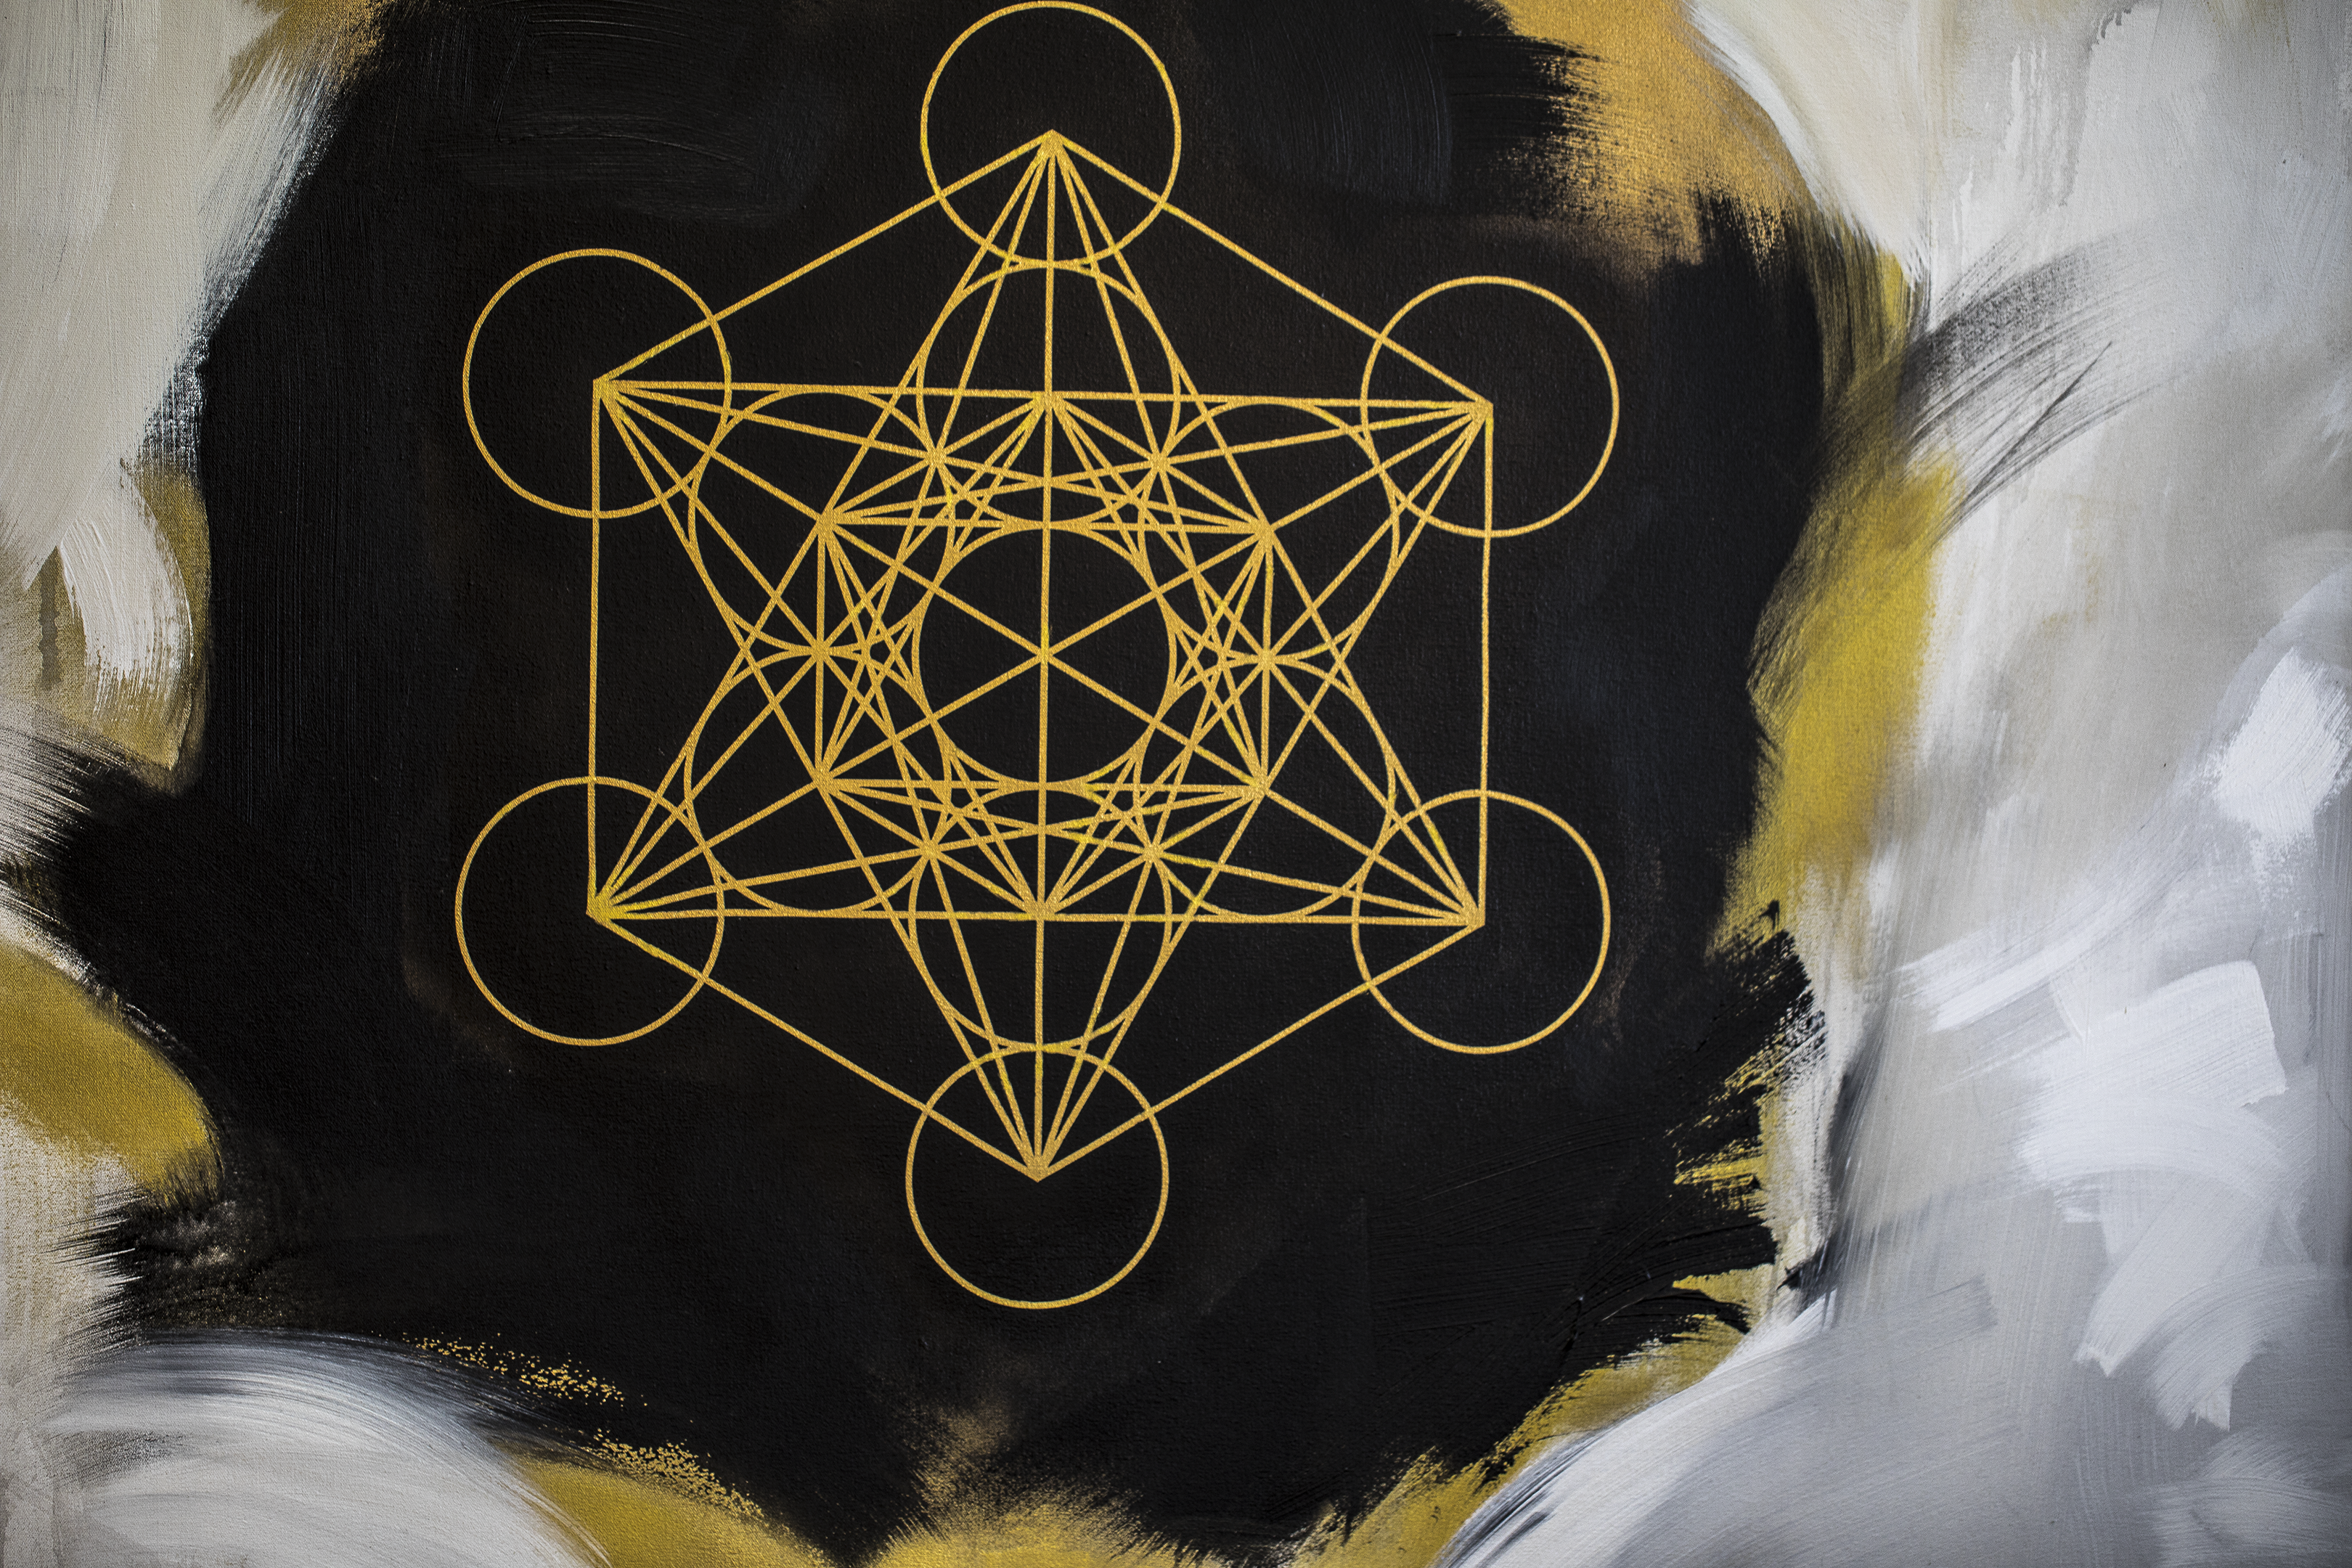 METATRON CUBE DETAIL